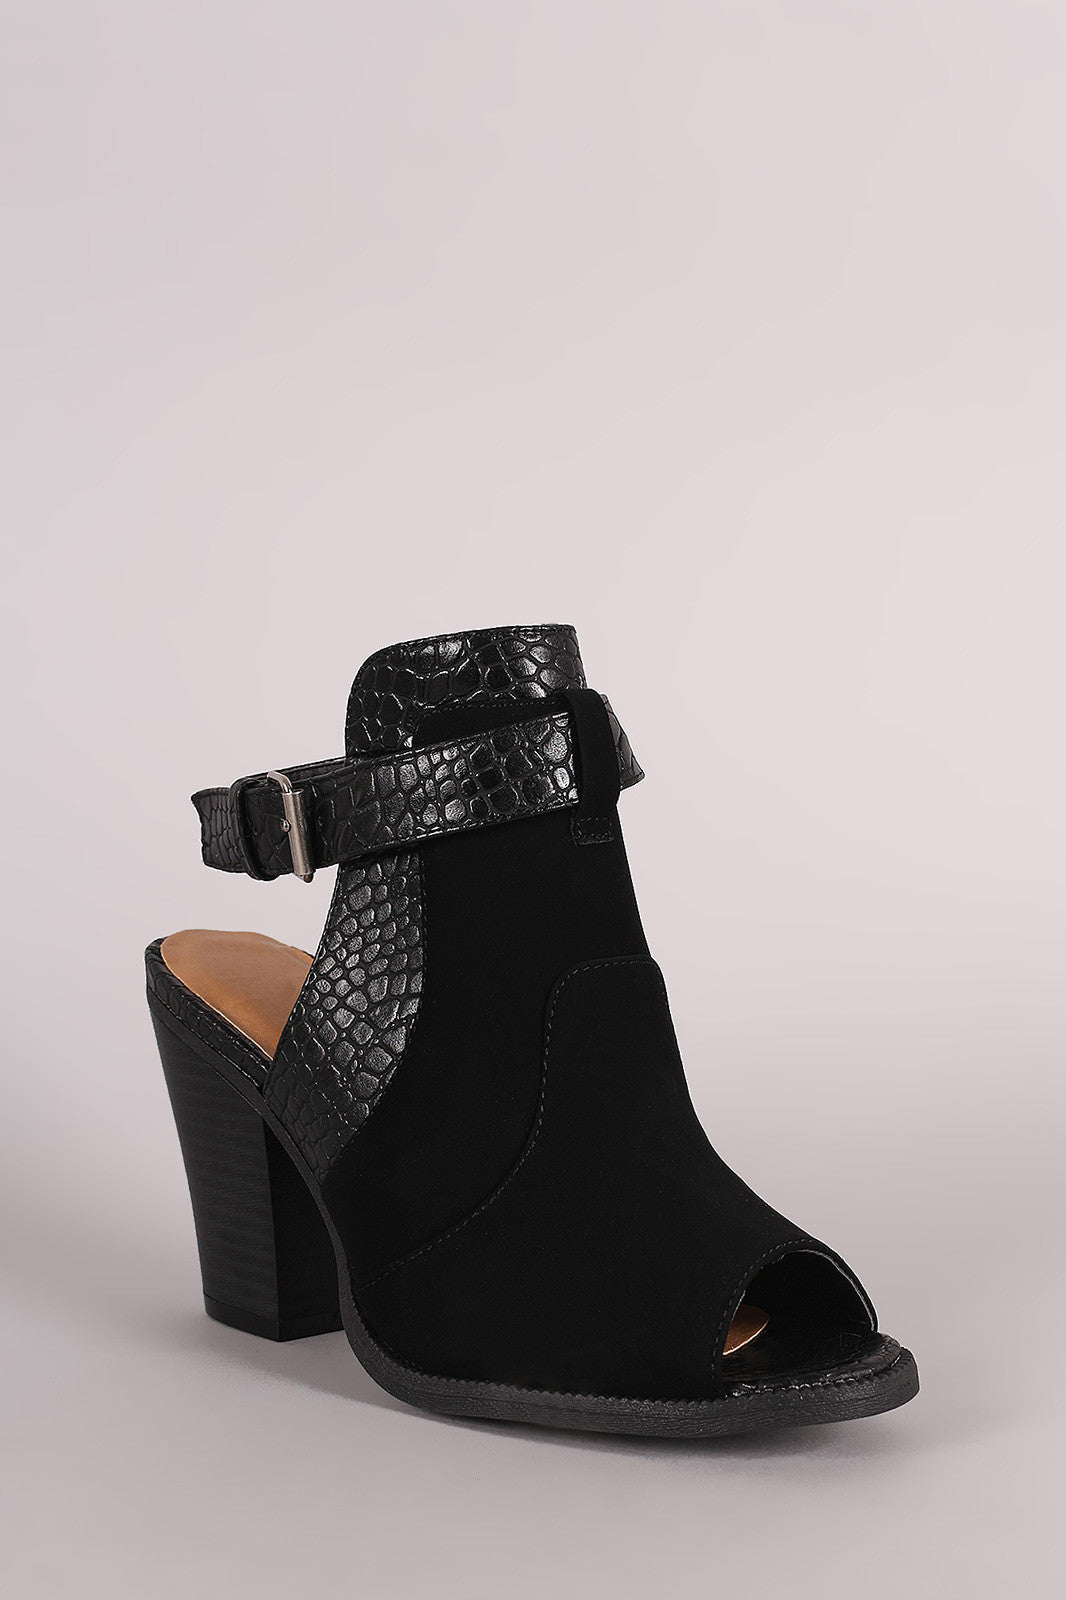 Wild Diva Lounge Croco Ankle Strap Chunky Heeled Mule Booties - Thick 'N' Curvy Shop - 2